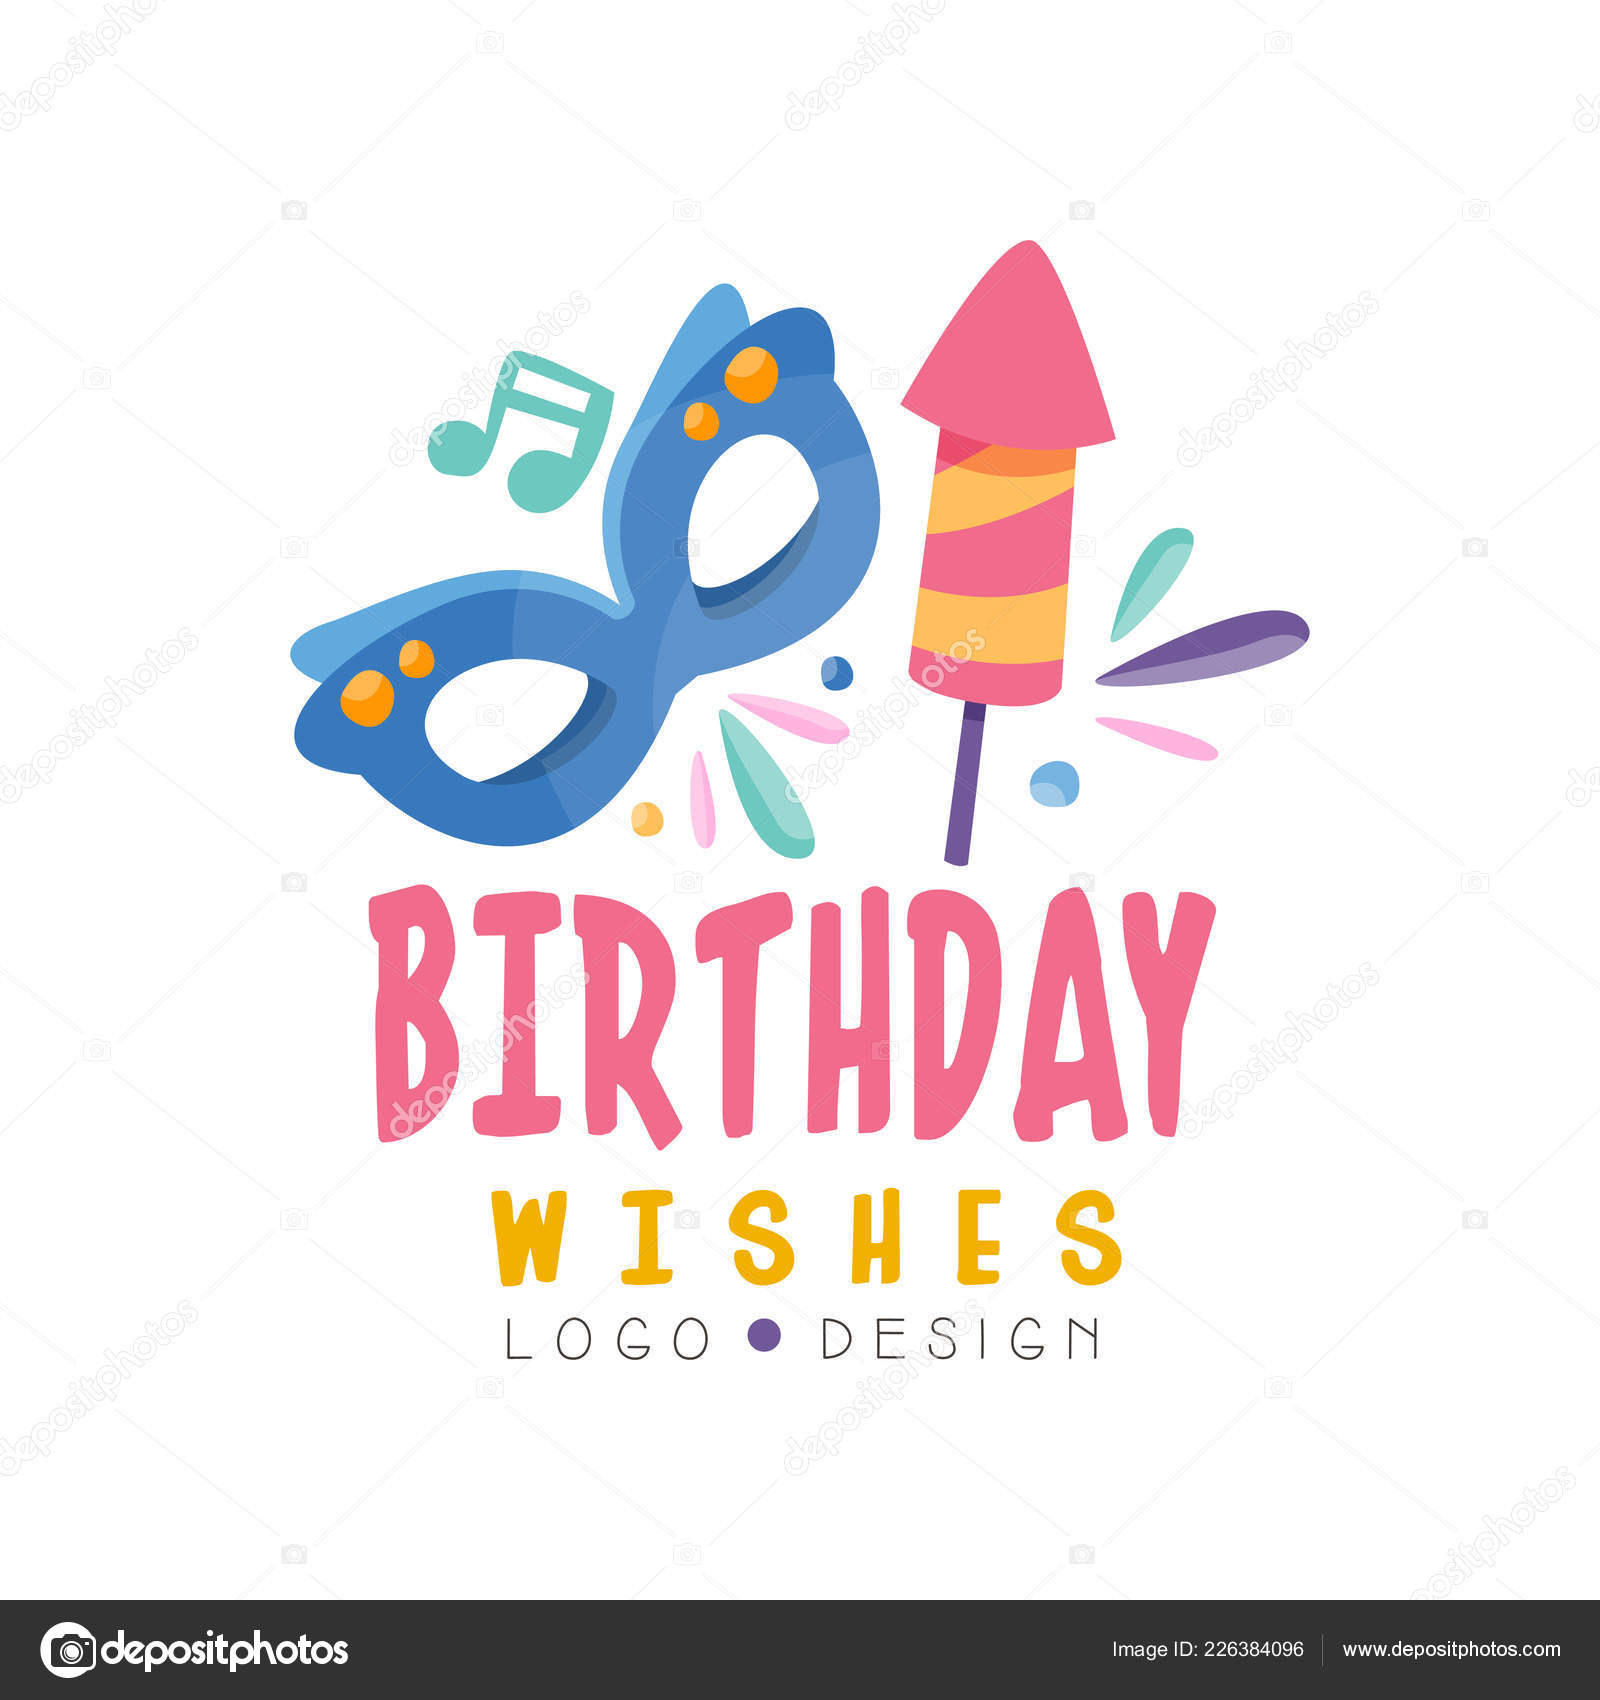 Birthday Wishes Logo Design Colorful Template For Banner Poster Greeting Card Vector Illustration Isolated On A White Background By